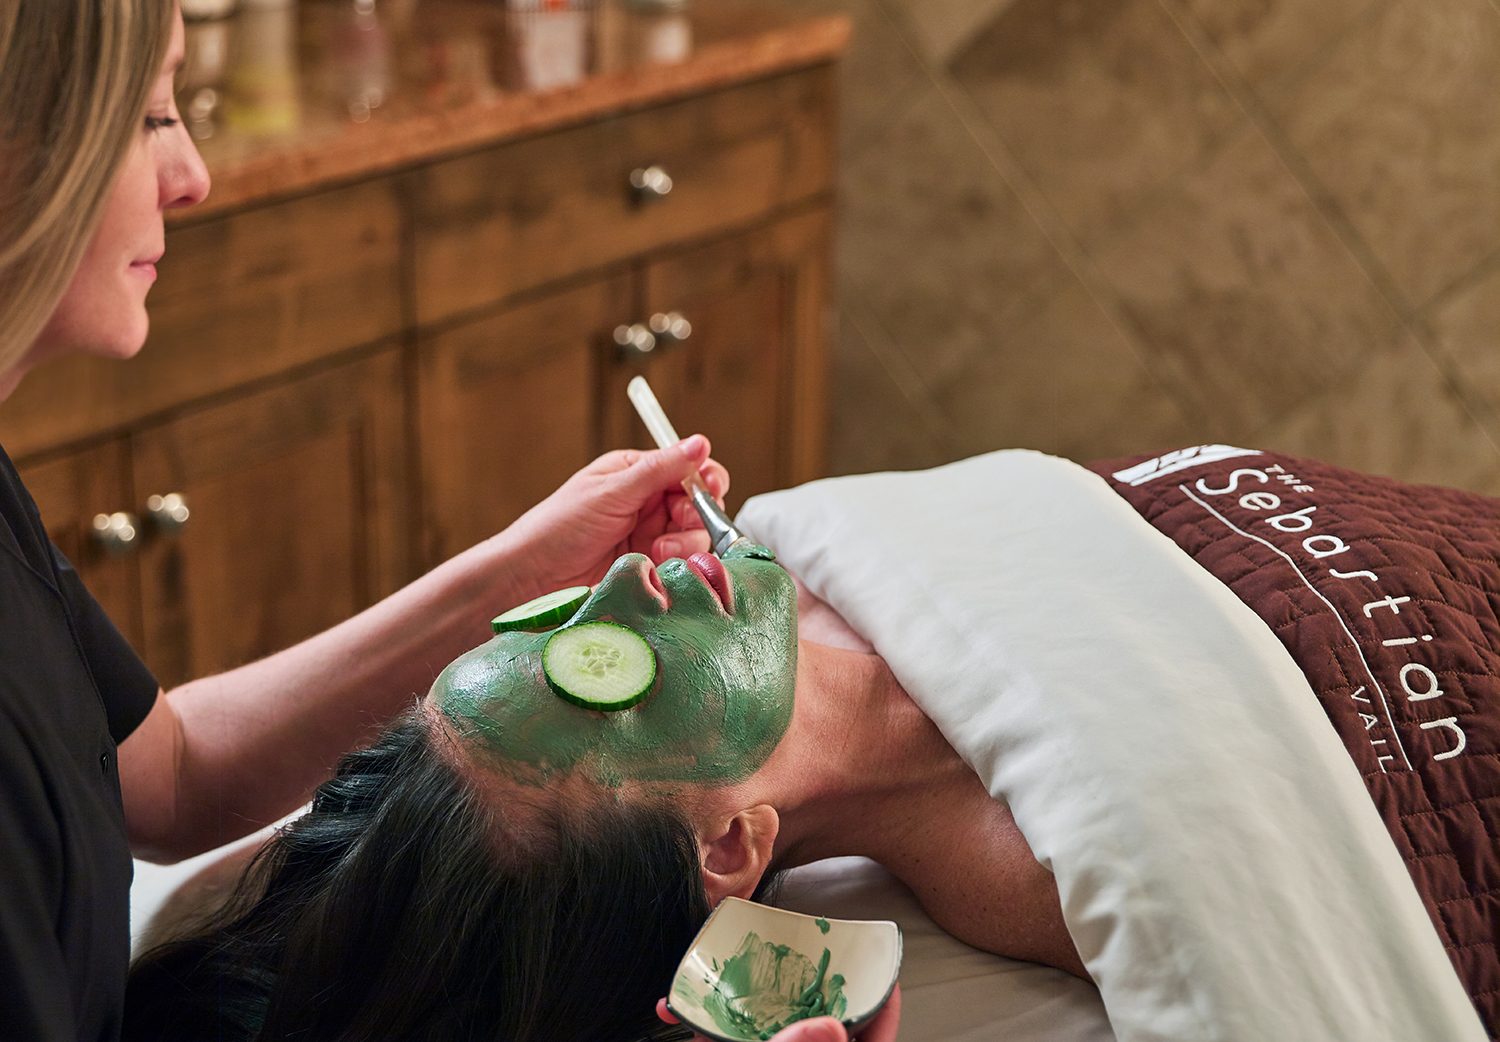 Bloom Spa offers a variety of relaxing and soothing treatments, including facials.